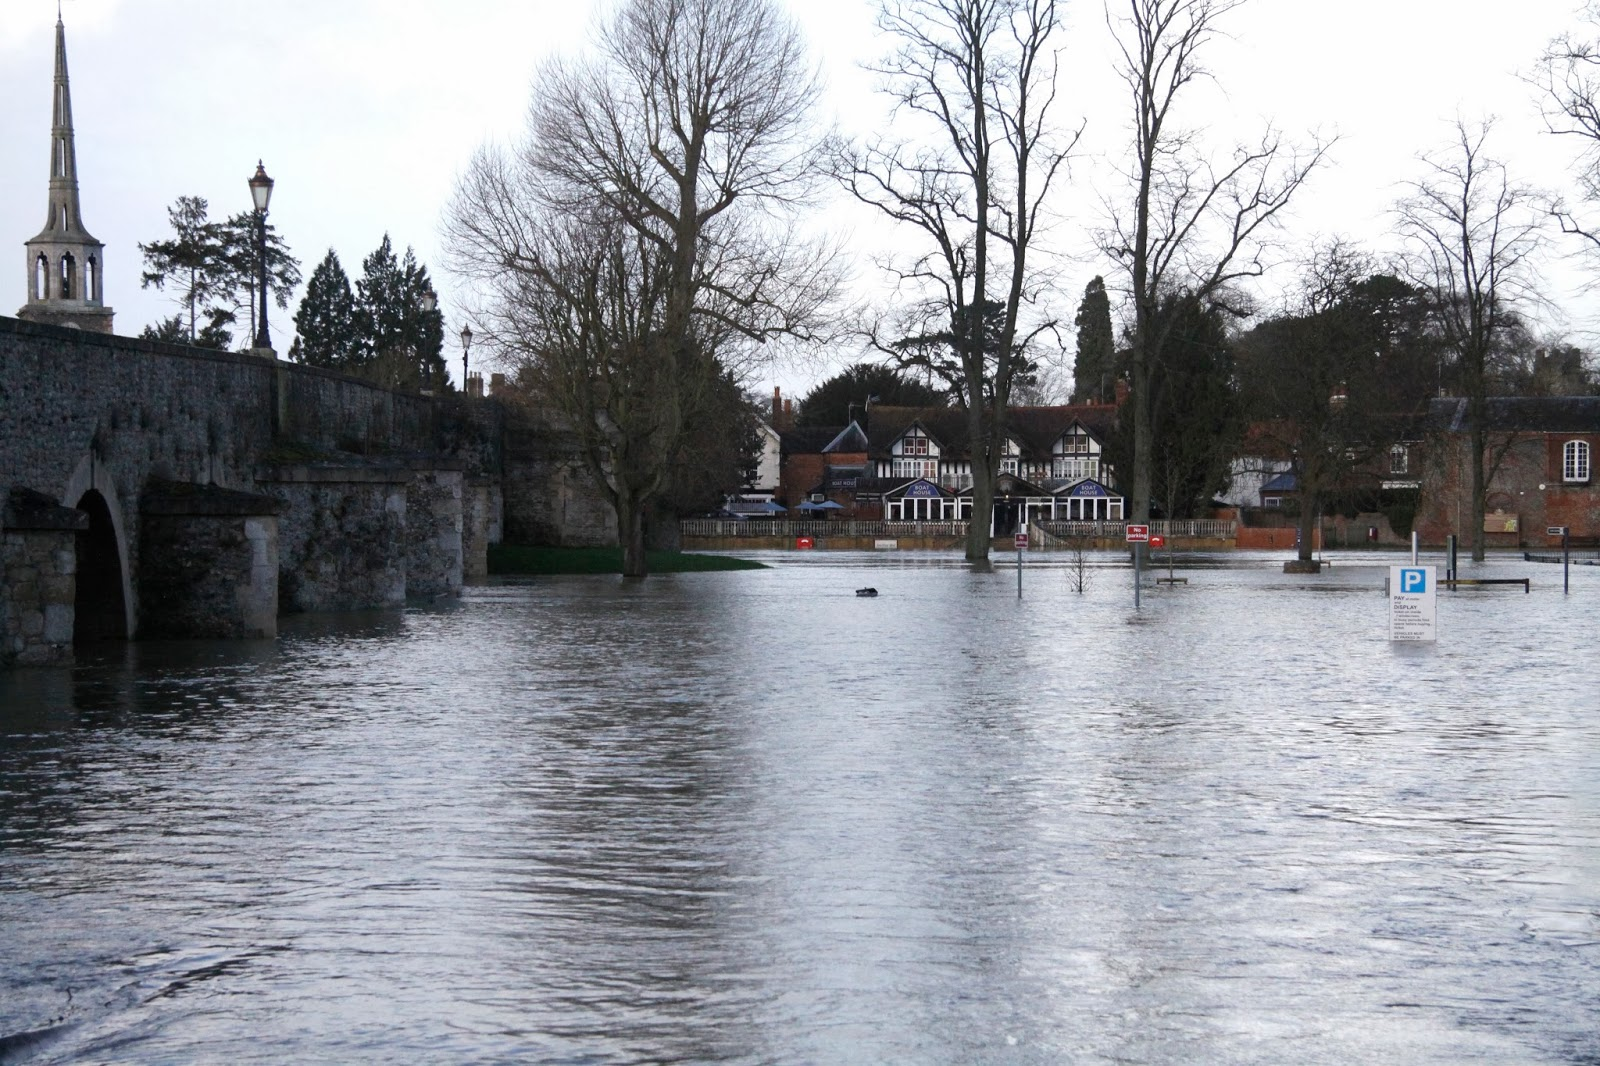 Flooding on the river Thames at Wallingford, Oxfordshire January 2014